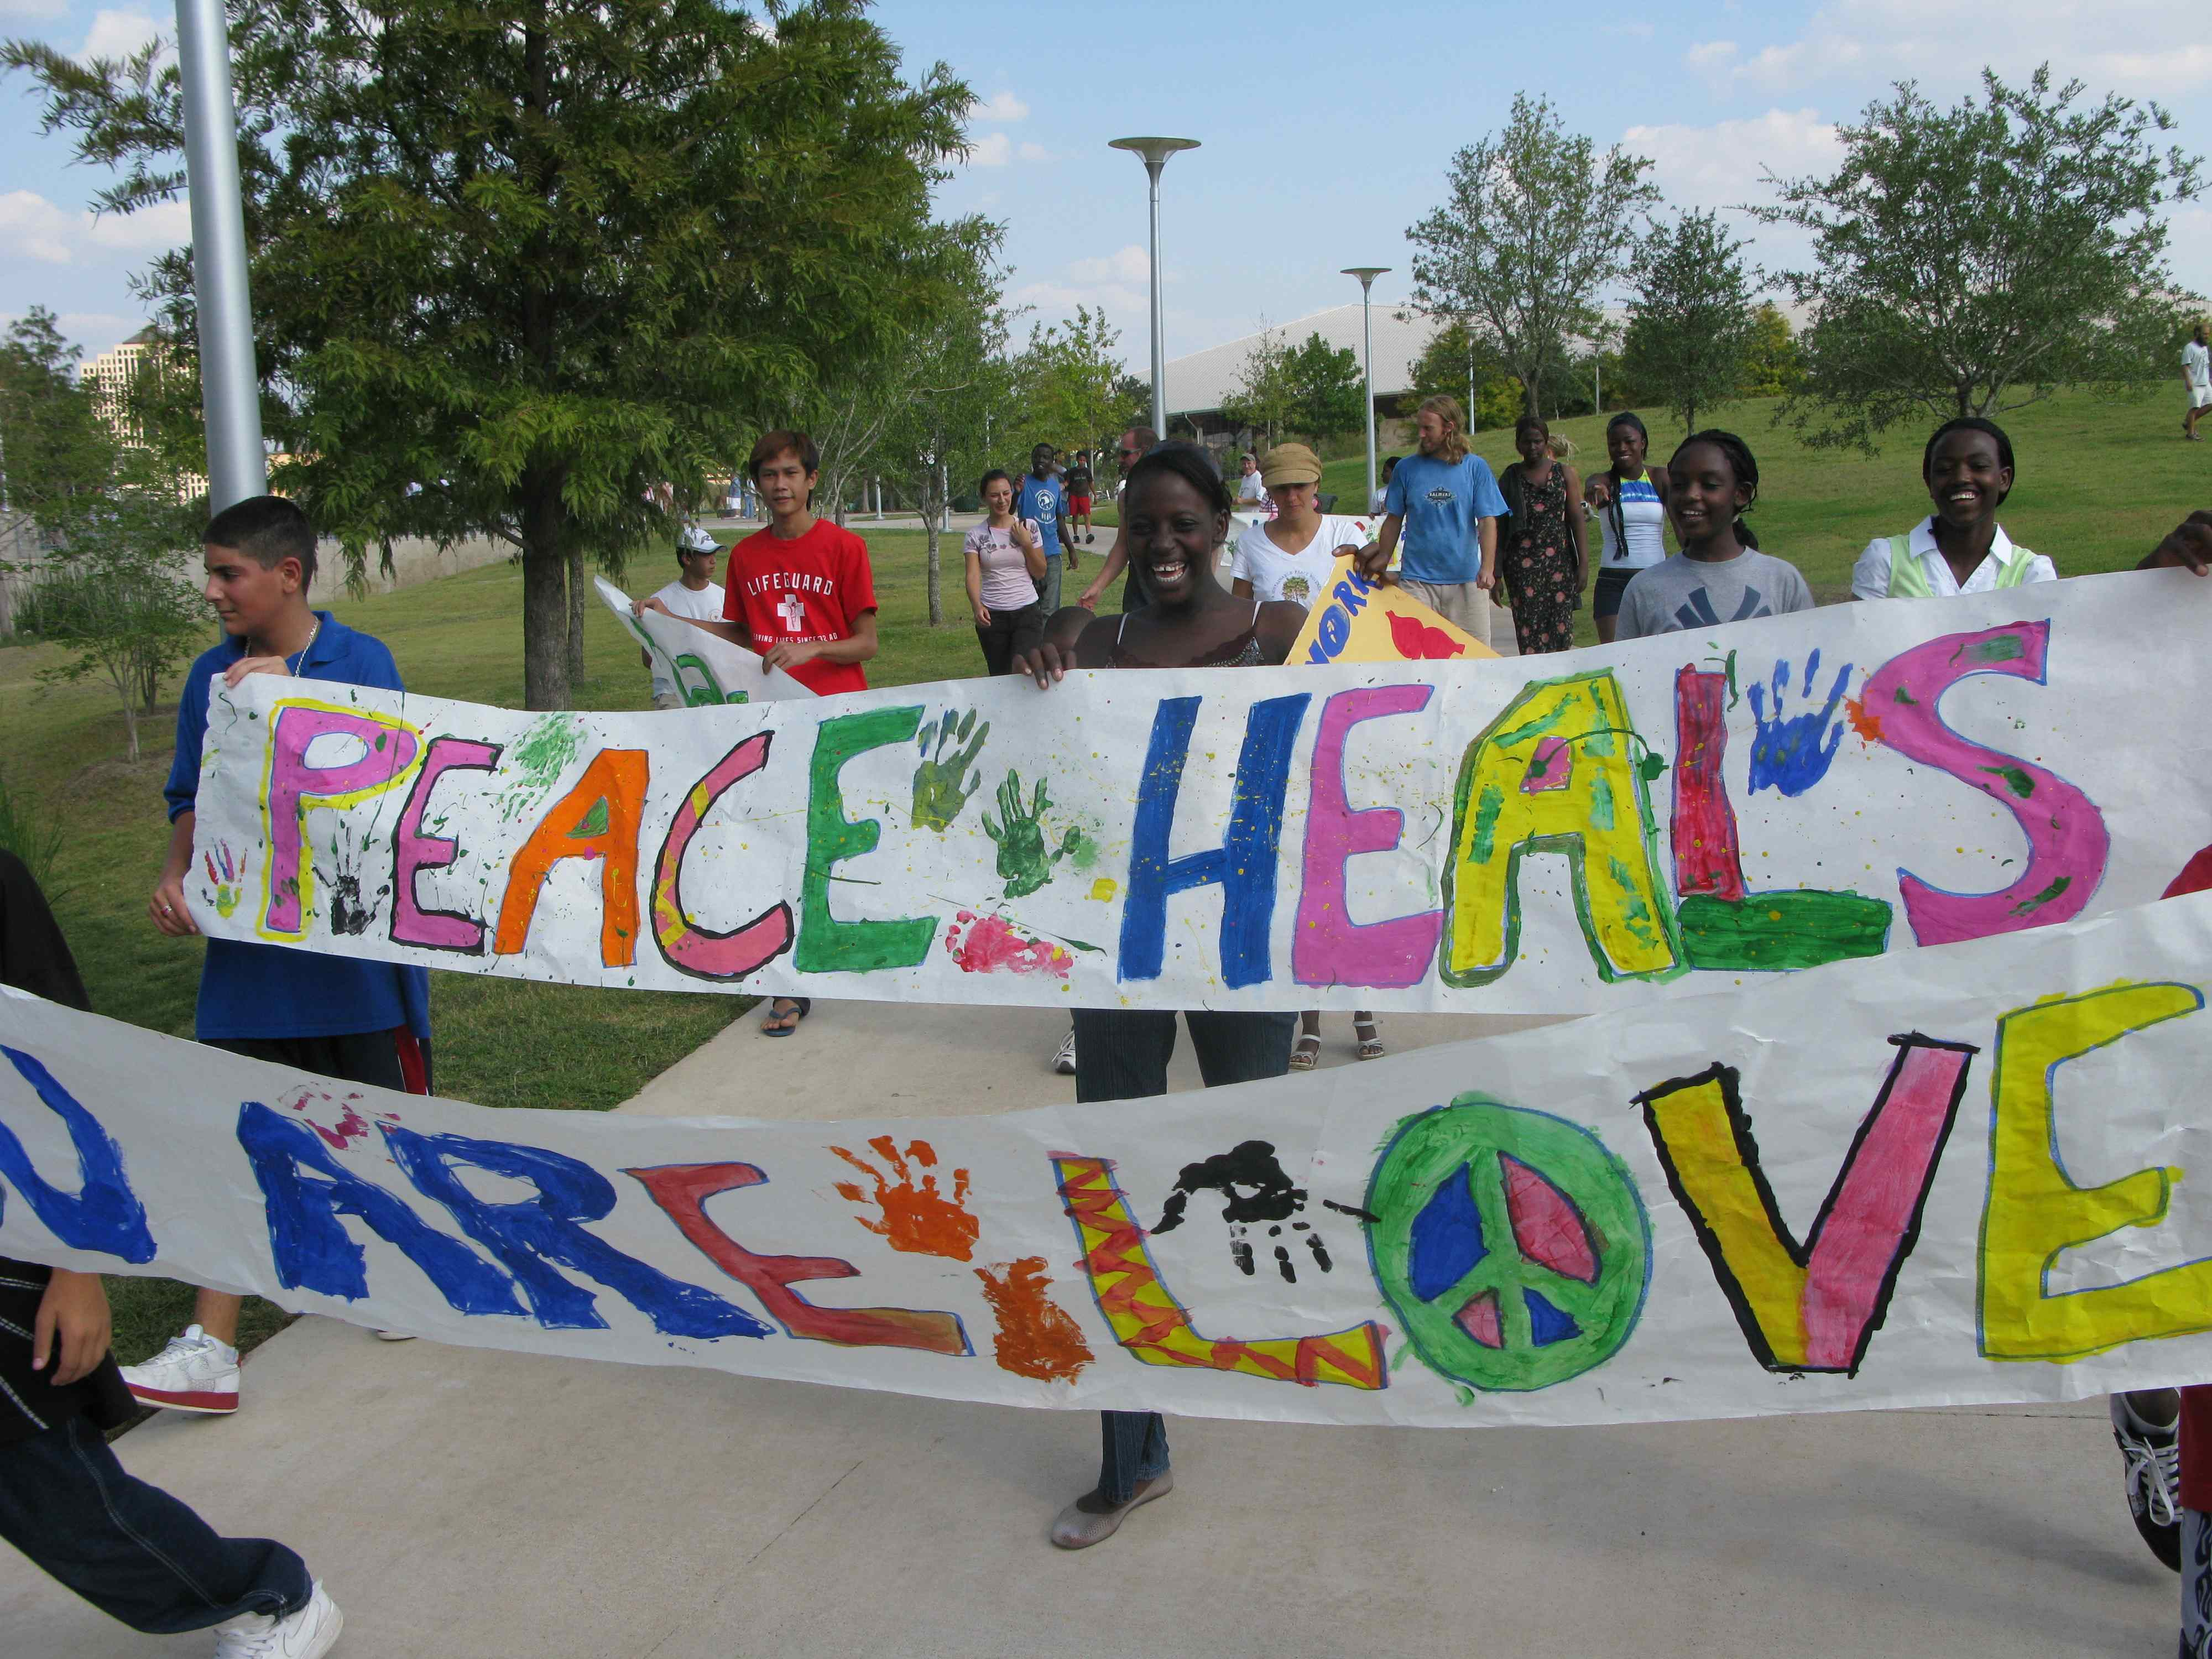 Austin March for Peace - One Village March For PeaceMarch For Peace